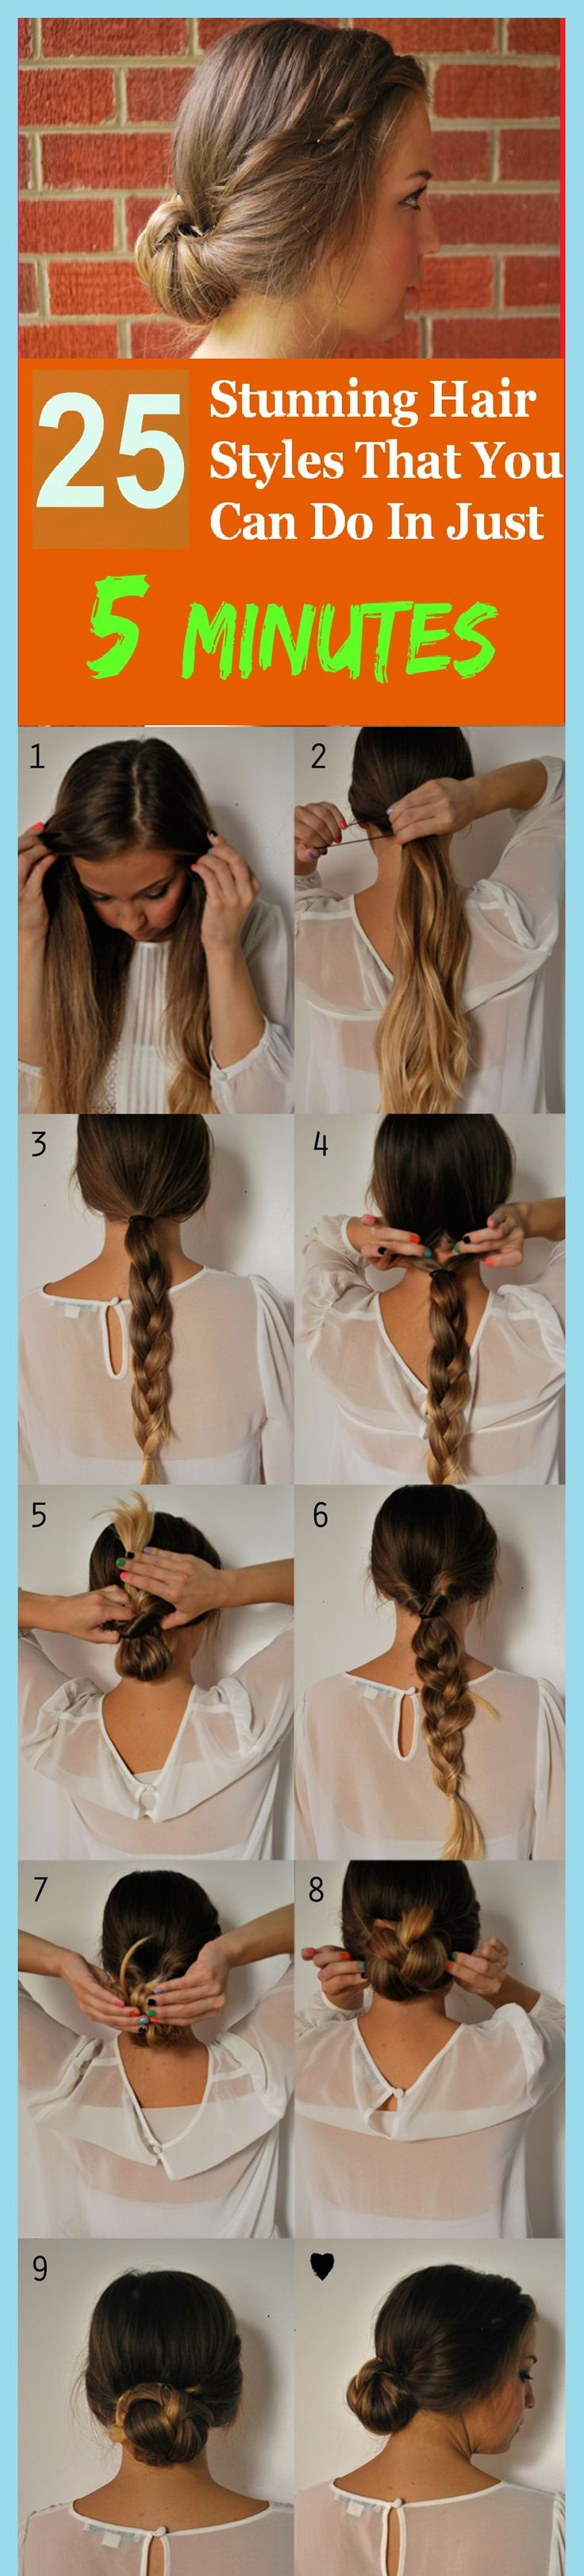 109 best Hairstyles for Nurses images on Pinterest